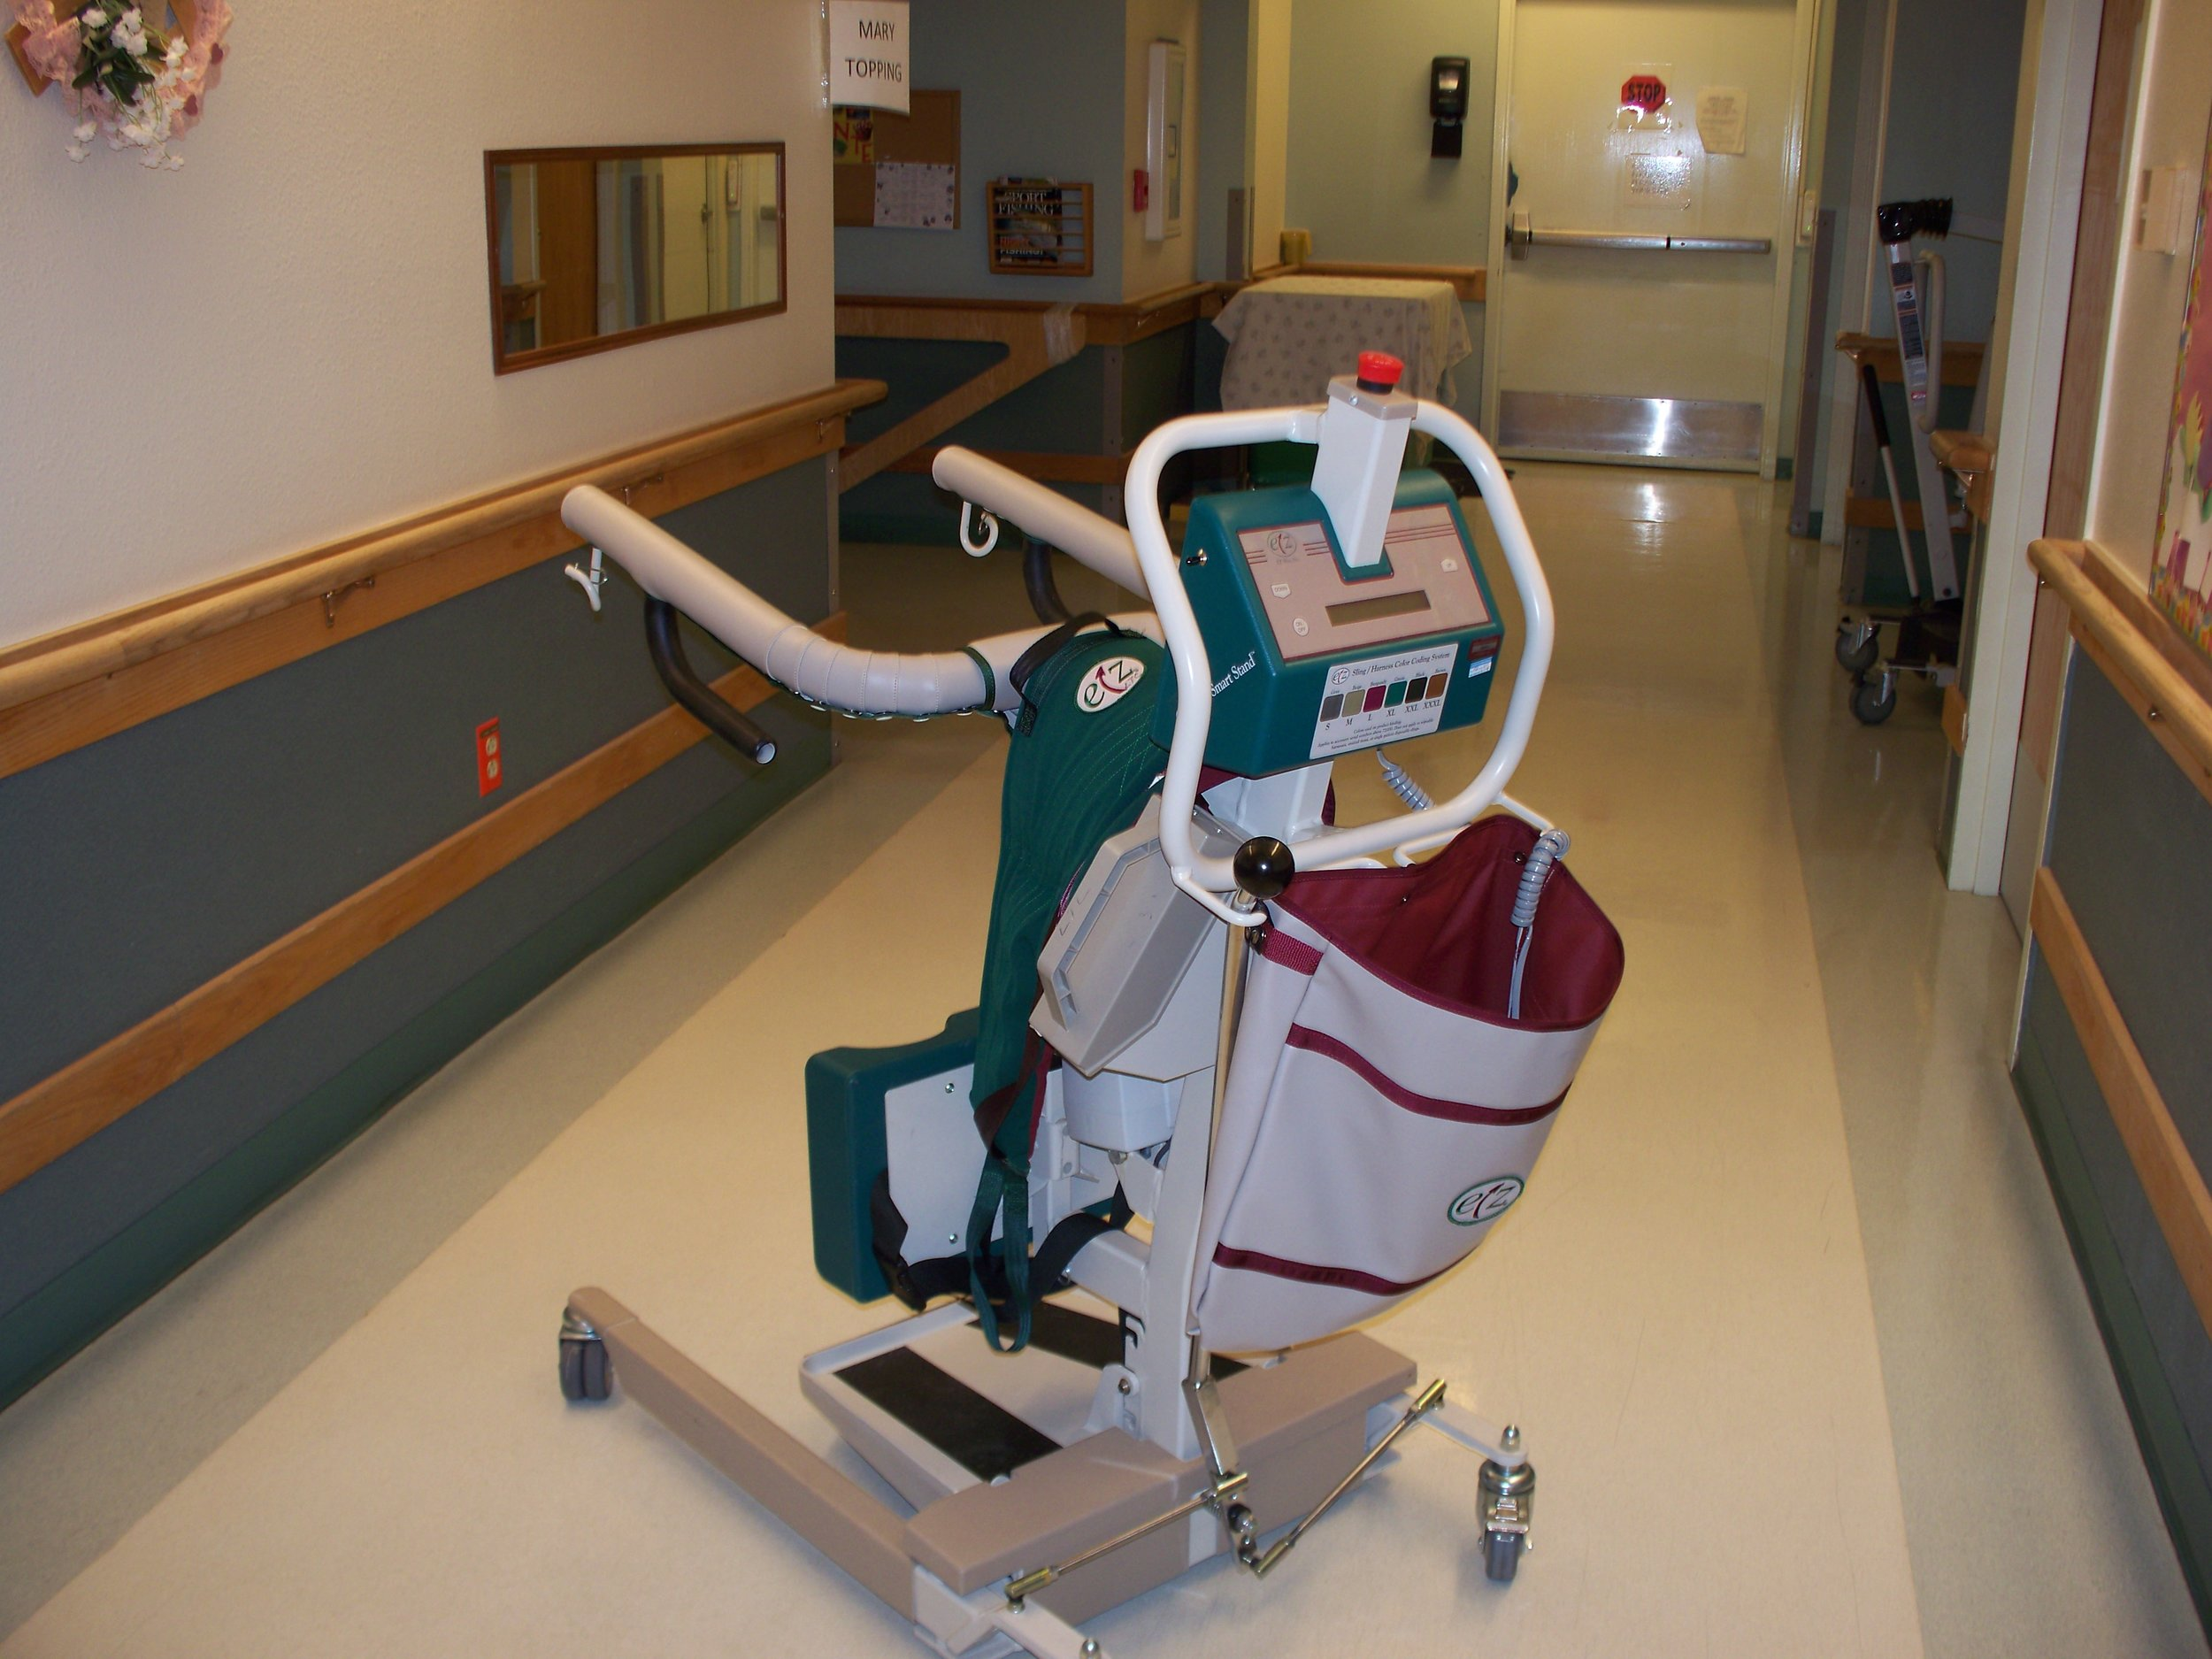 A lift donated to Extended Care